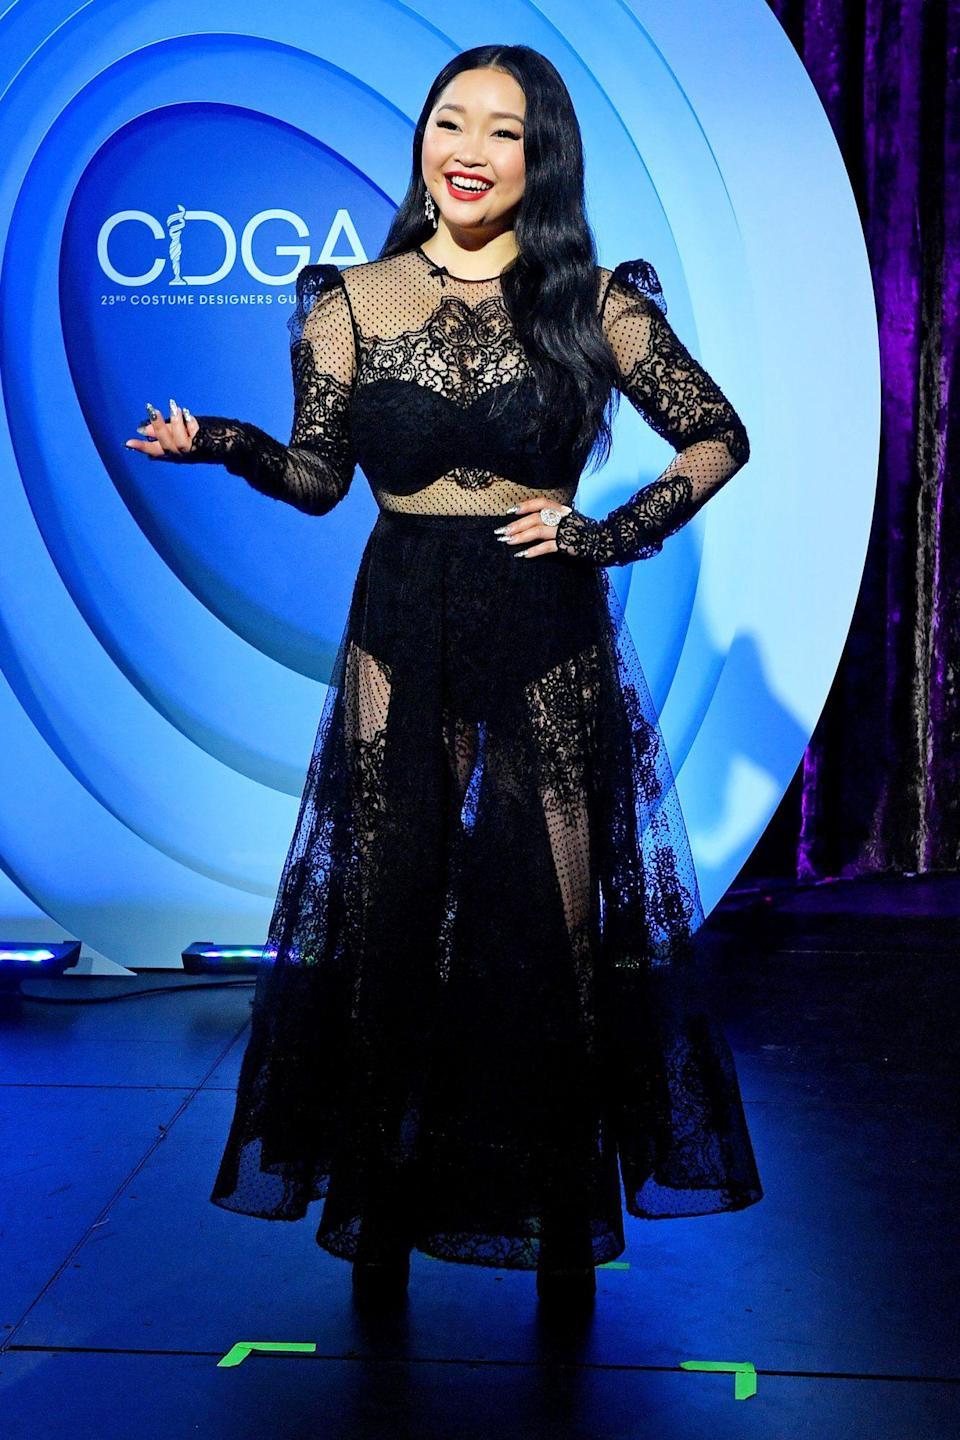 <p>Lana Condor stuns in black lace at the 23rd Costume Designer Guild Awards in L.A. on Tuesday.</p>